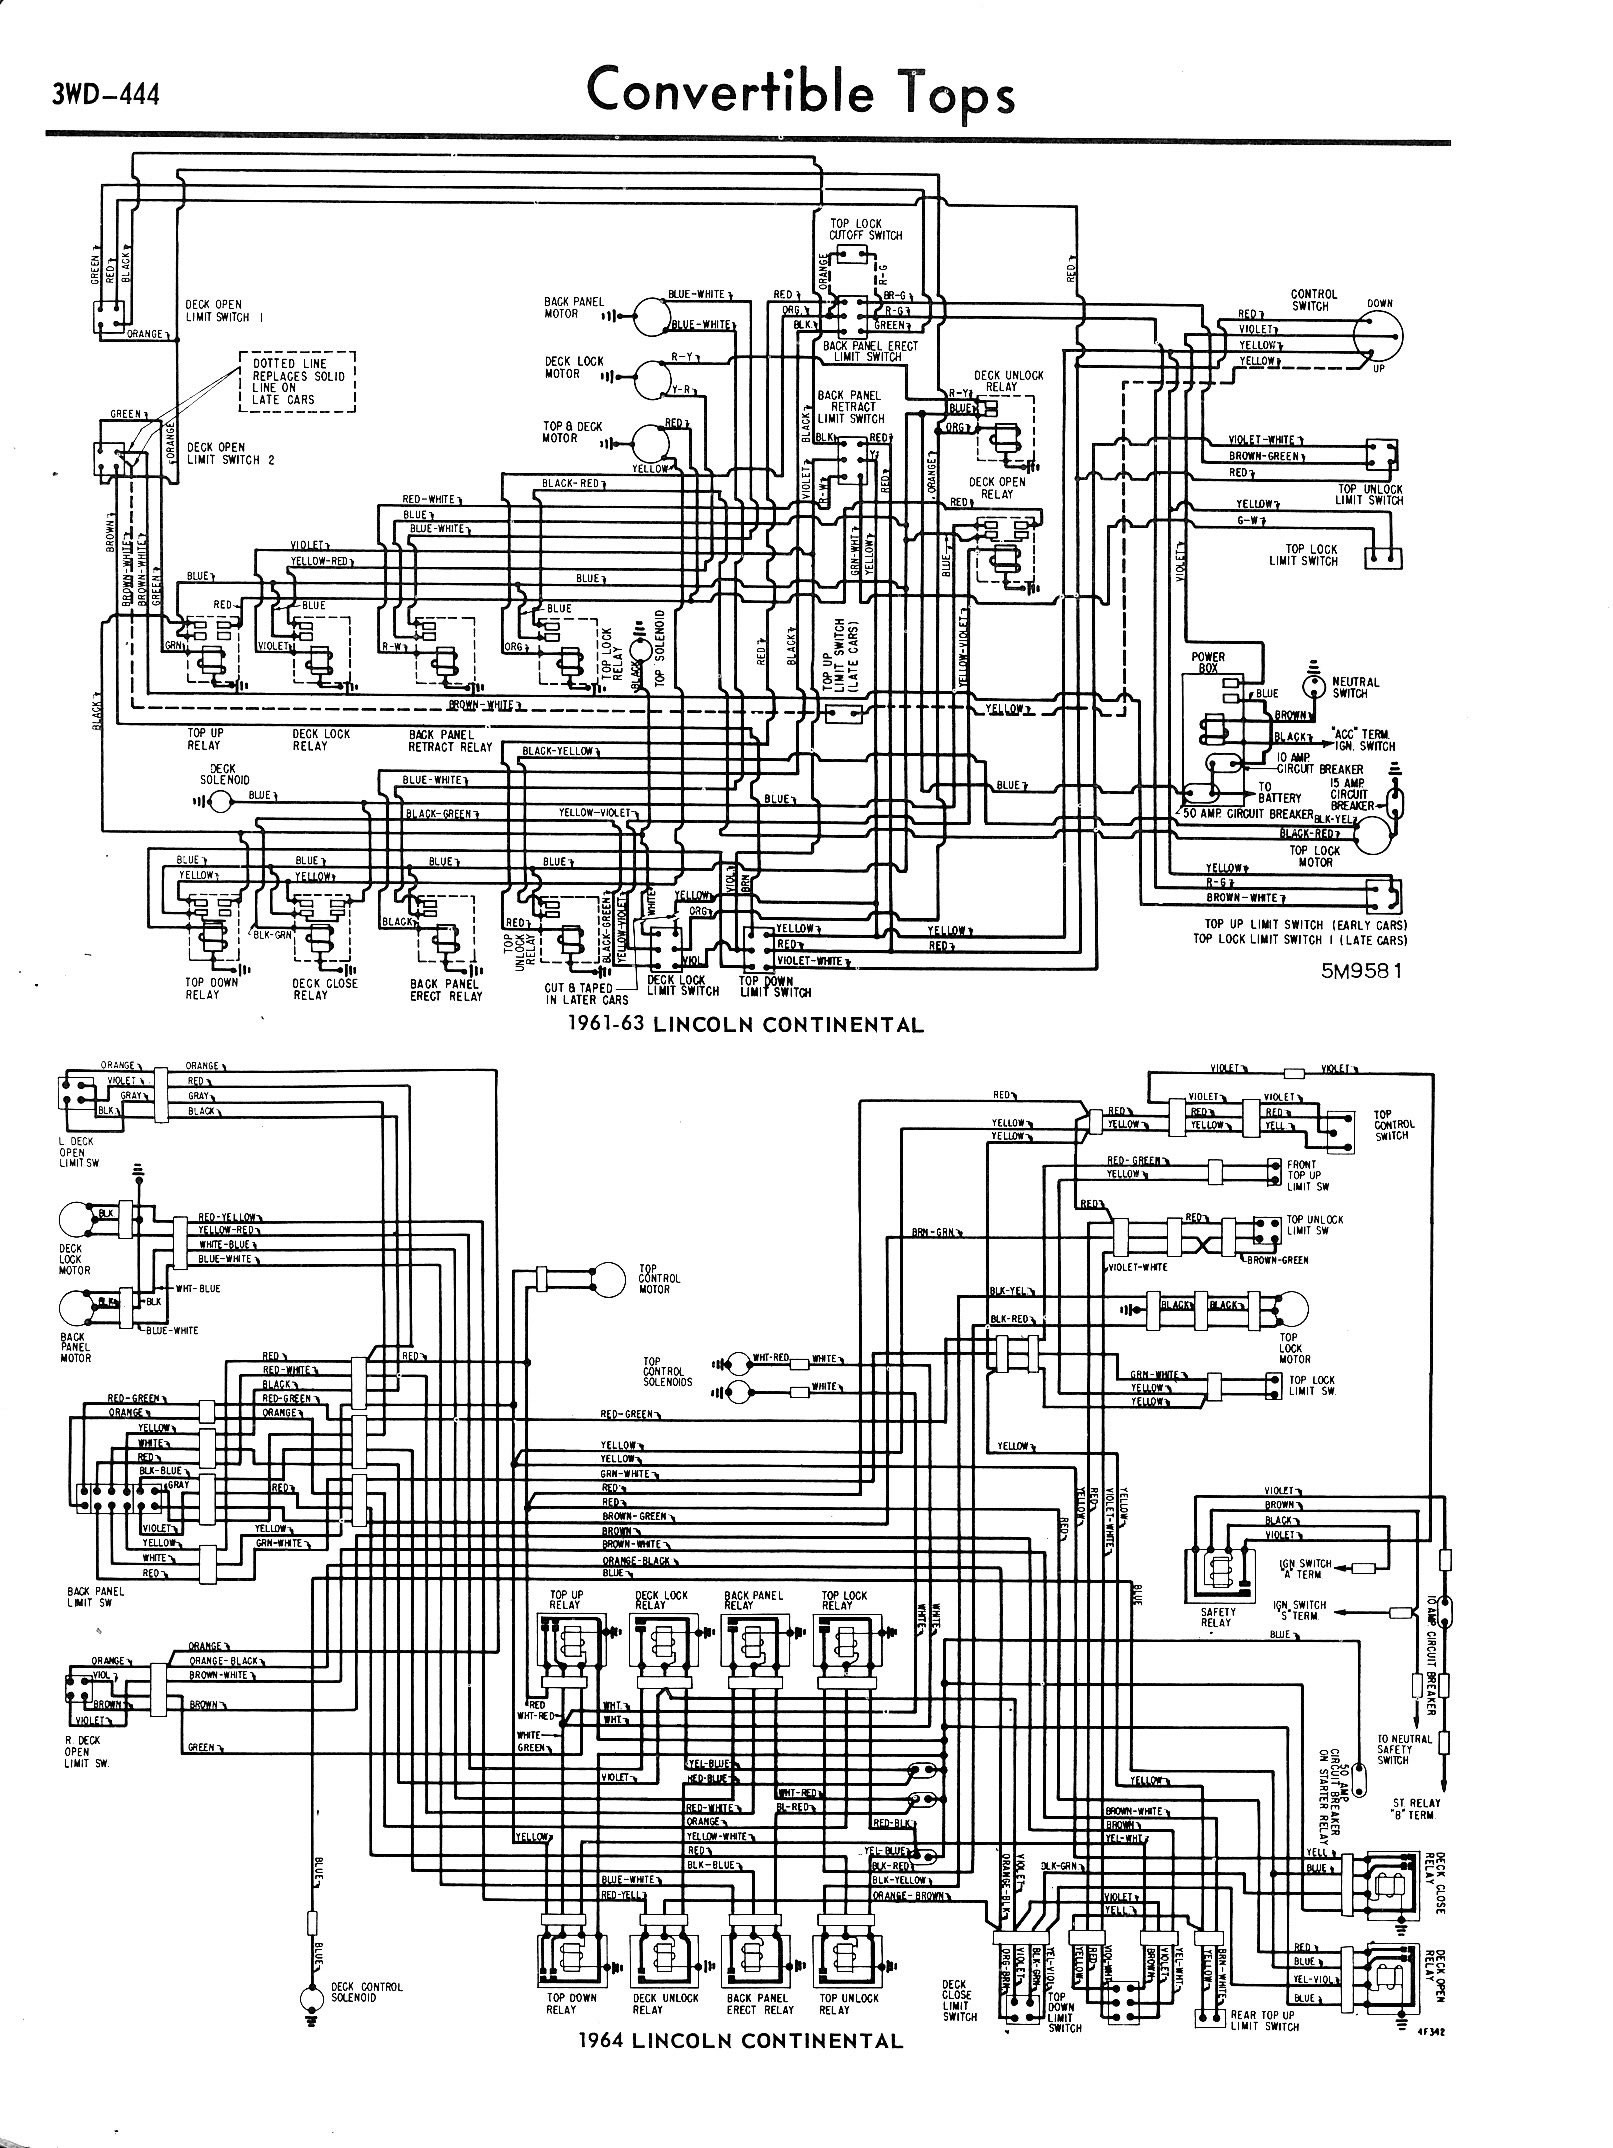 1947 Lincoln Continental Wiring Diagram Library For 94 Town Car 1990 Ford F 150